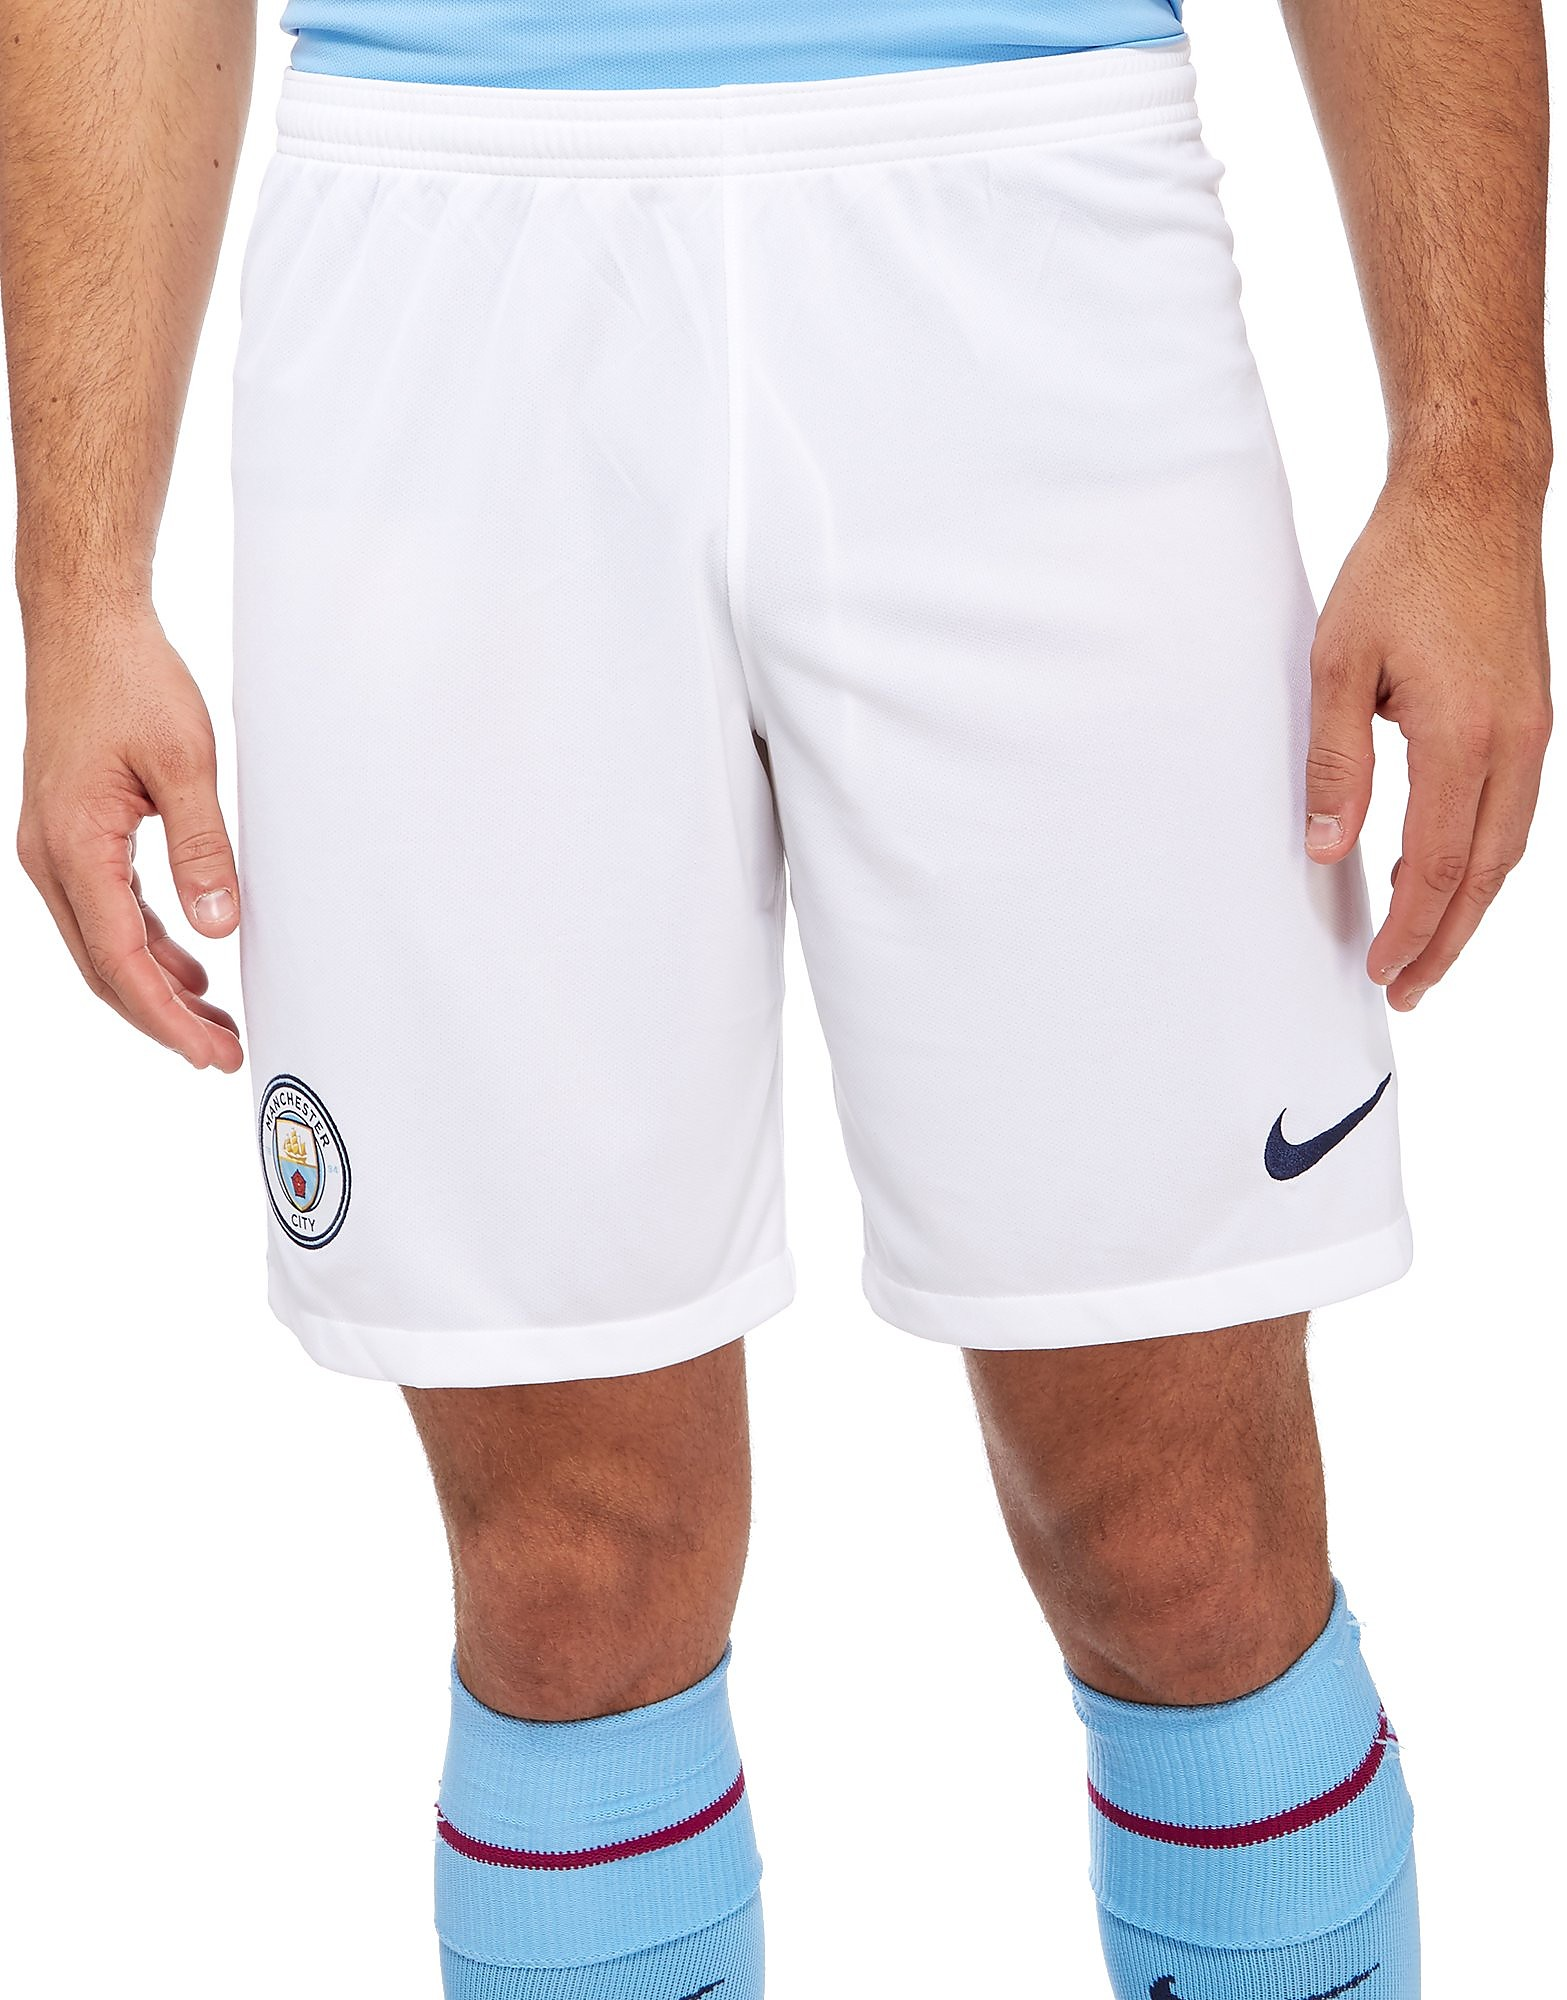 Nike Manchester City FC 2017/18 Home Shorts PRE ORDER